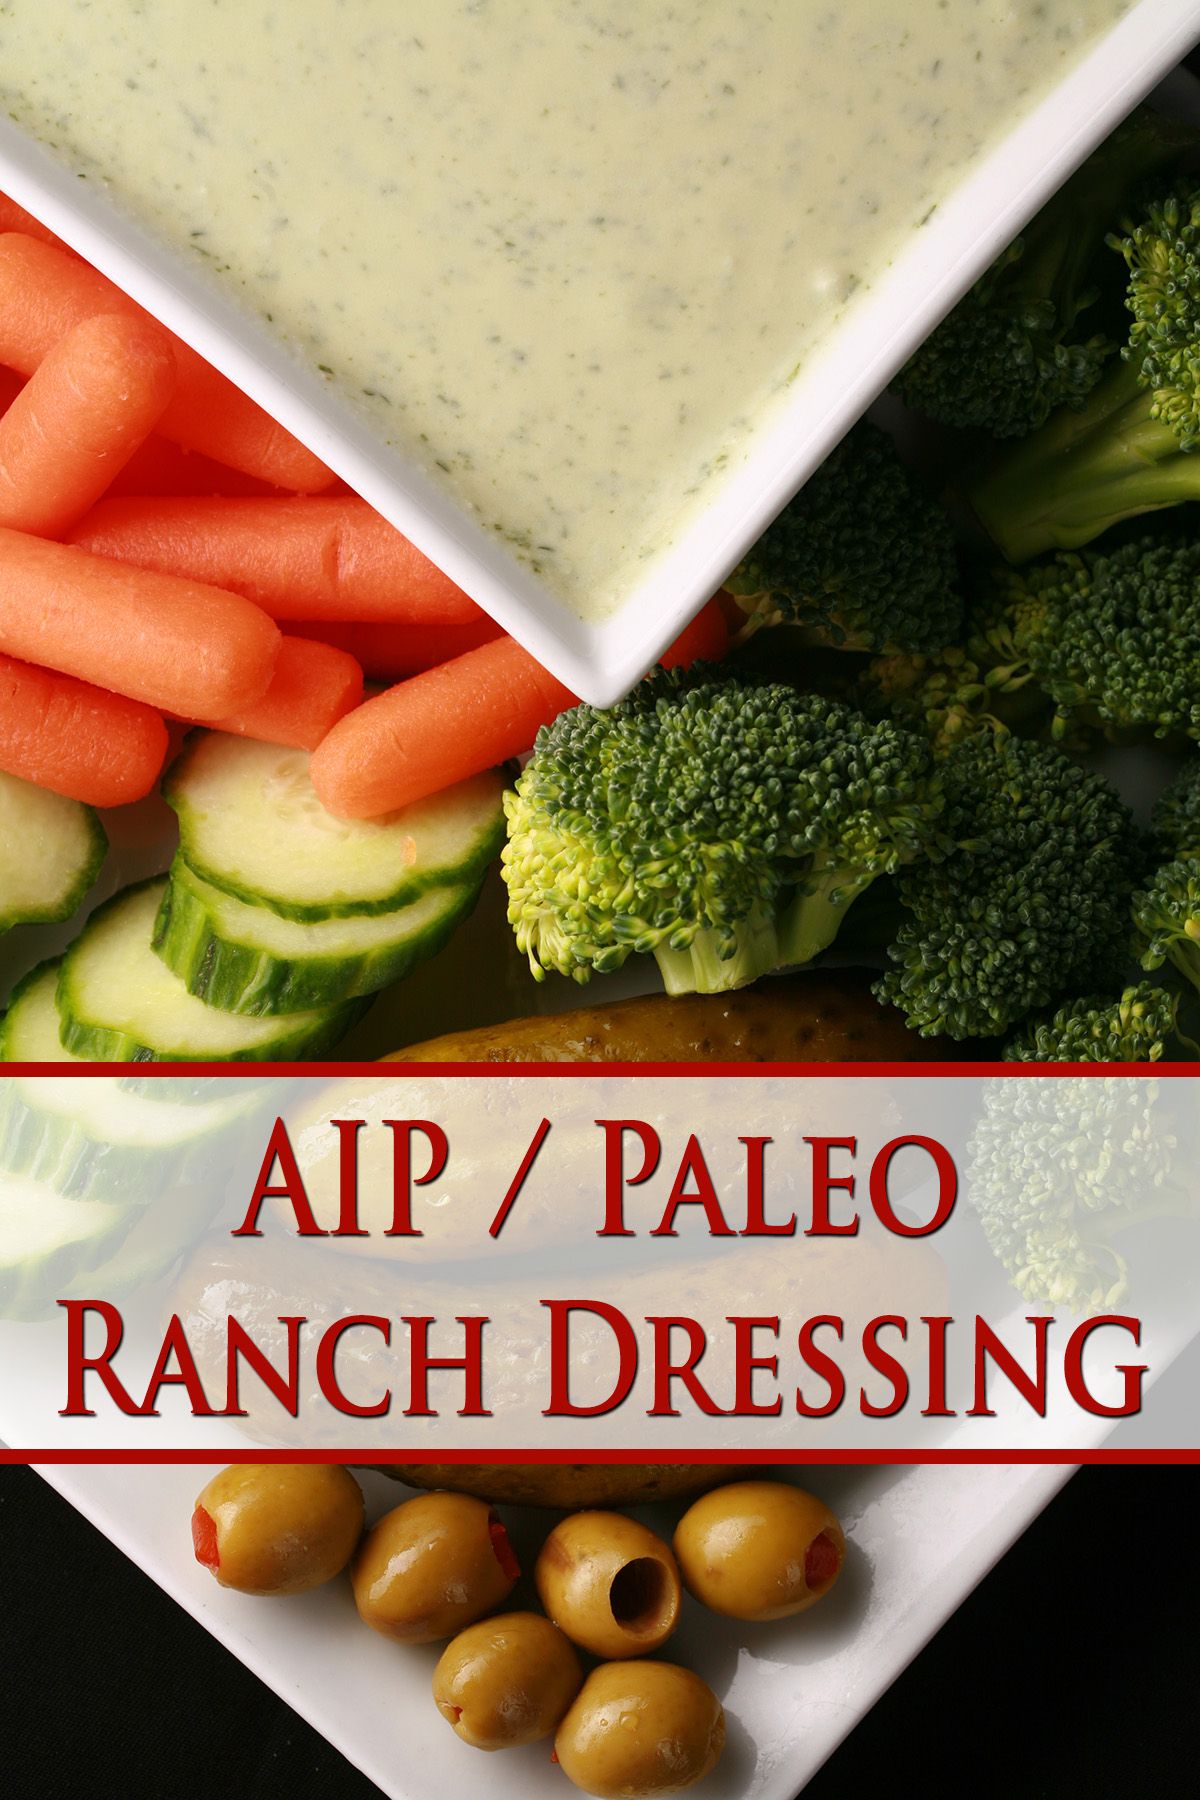 A bowl of AIP Ranch dressing, surrounded by cut vegetables.